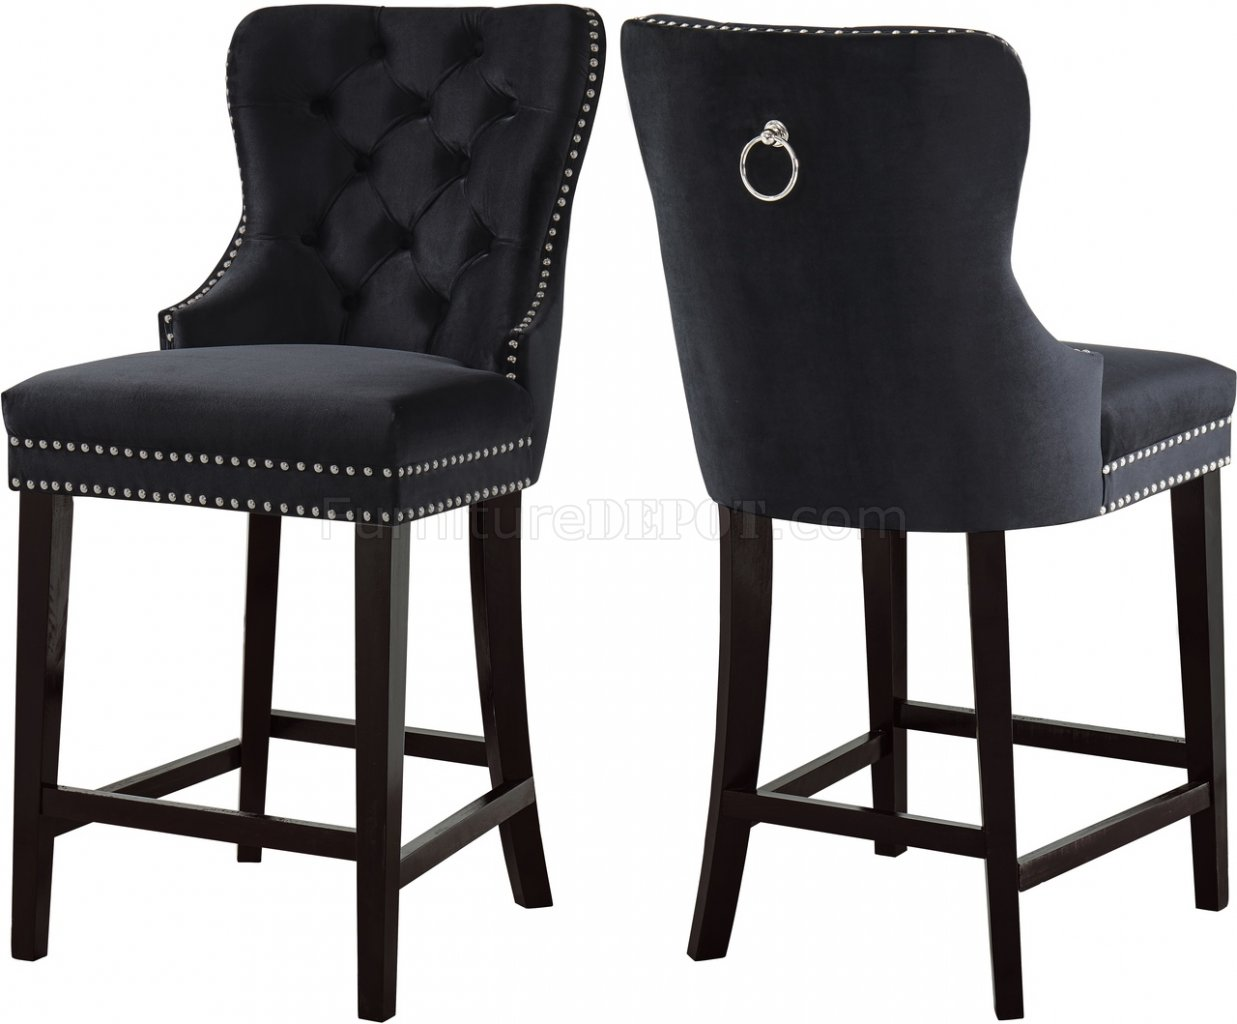 Nikki Stool 741 Set Of 2 In Black Velvet Fabric By Meridian